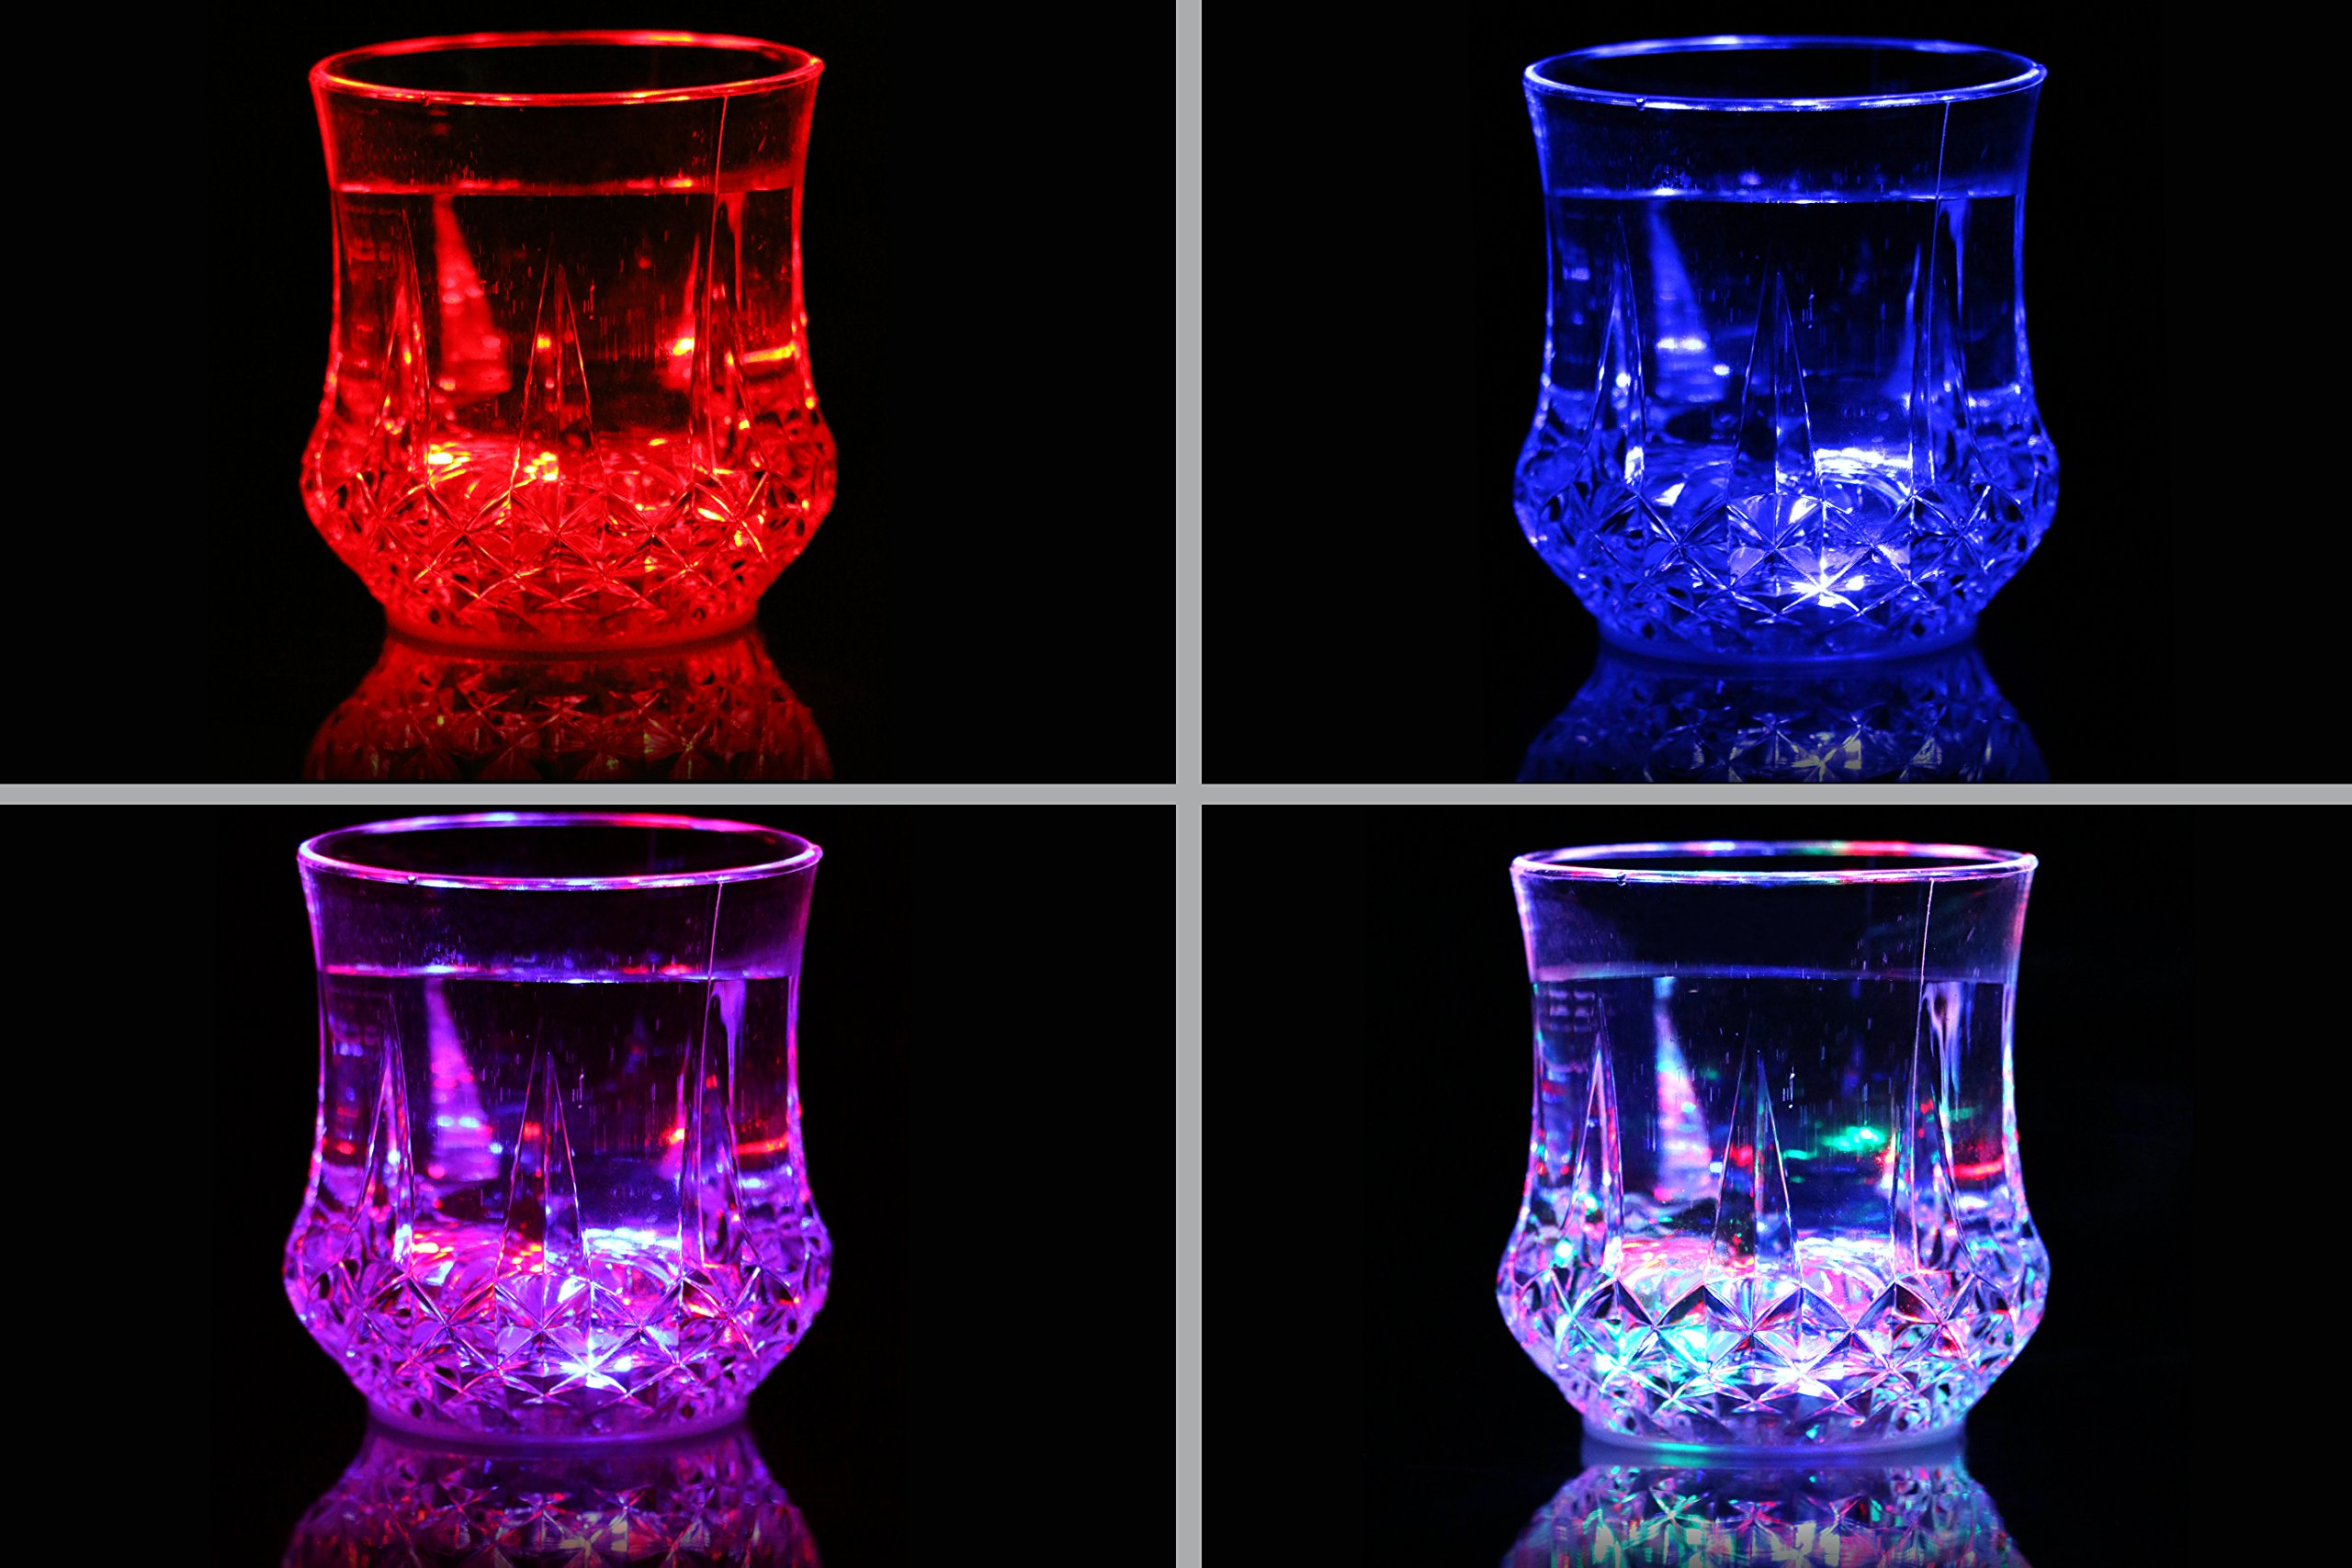 DESERT FOX LED Cup, Led Flashing Cup Appliance for Nightclub Bar KTV home party and Halloween Christmas Events(4 Pack)